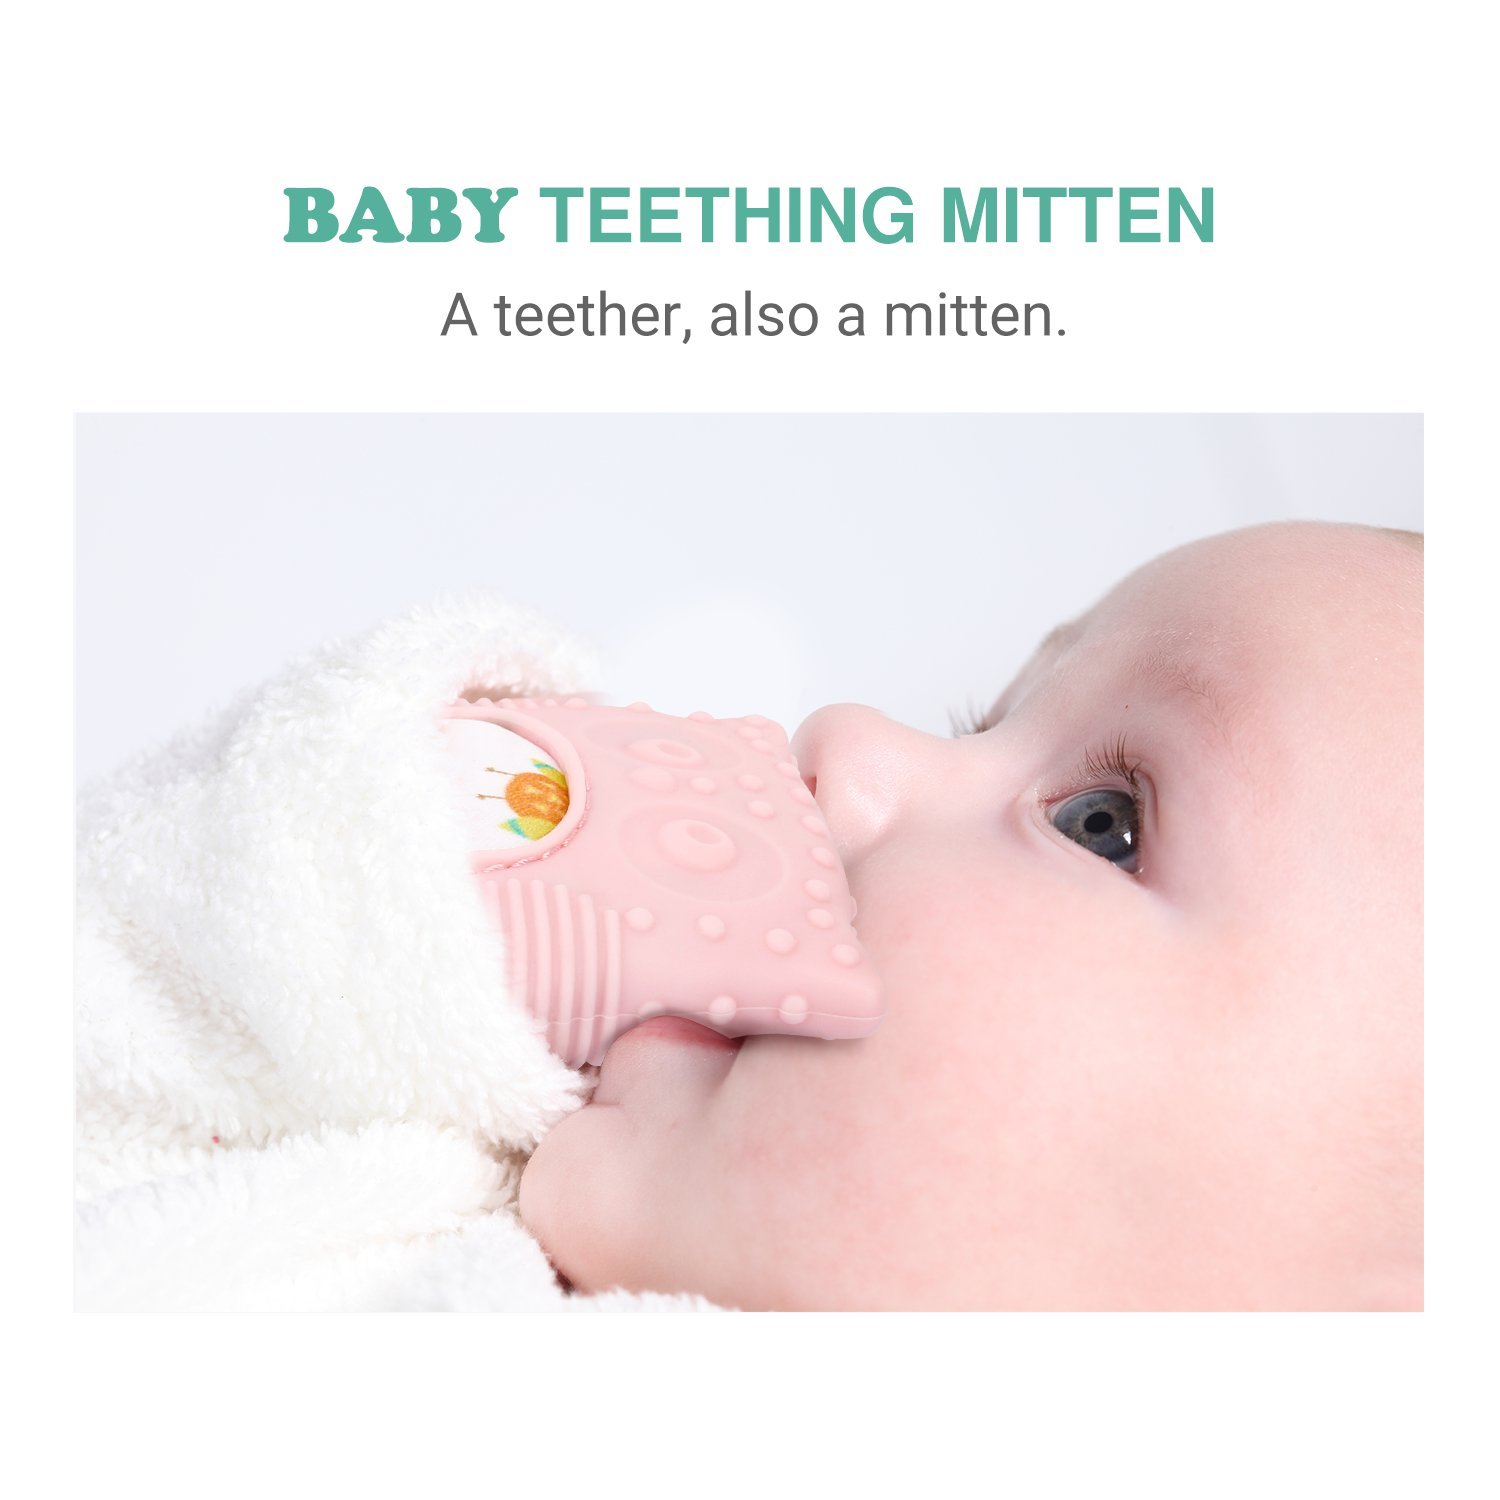 BPA-Free for 3 Soft Food-Grade Silicone Teether Mitten Glove Handy Teething Mit Toy for Self-Soothing Mint Green Zooawa Baby Teething Mitten 18 Months Infants